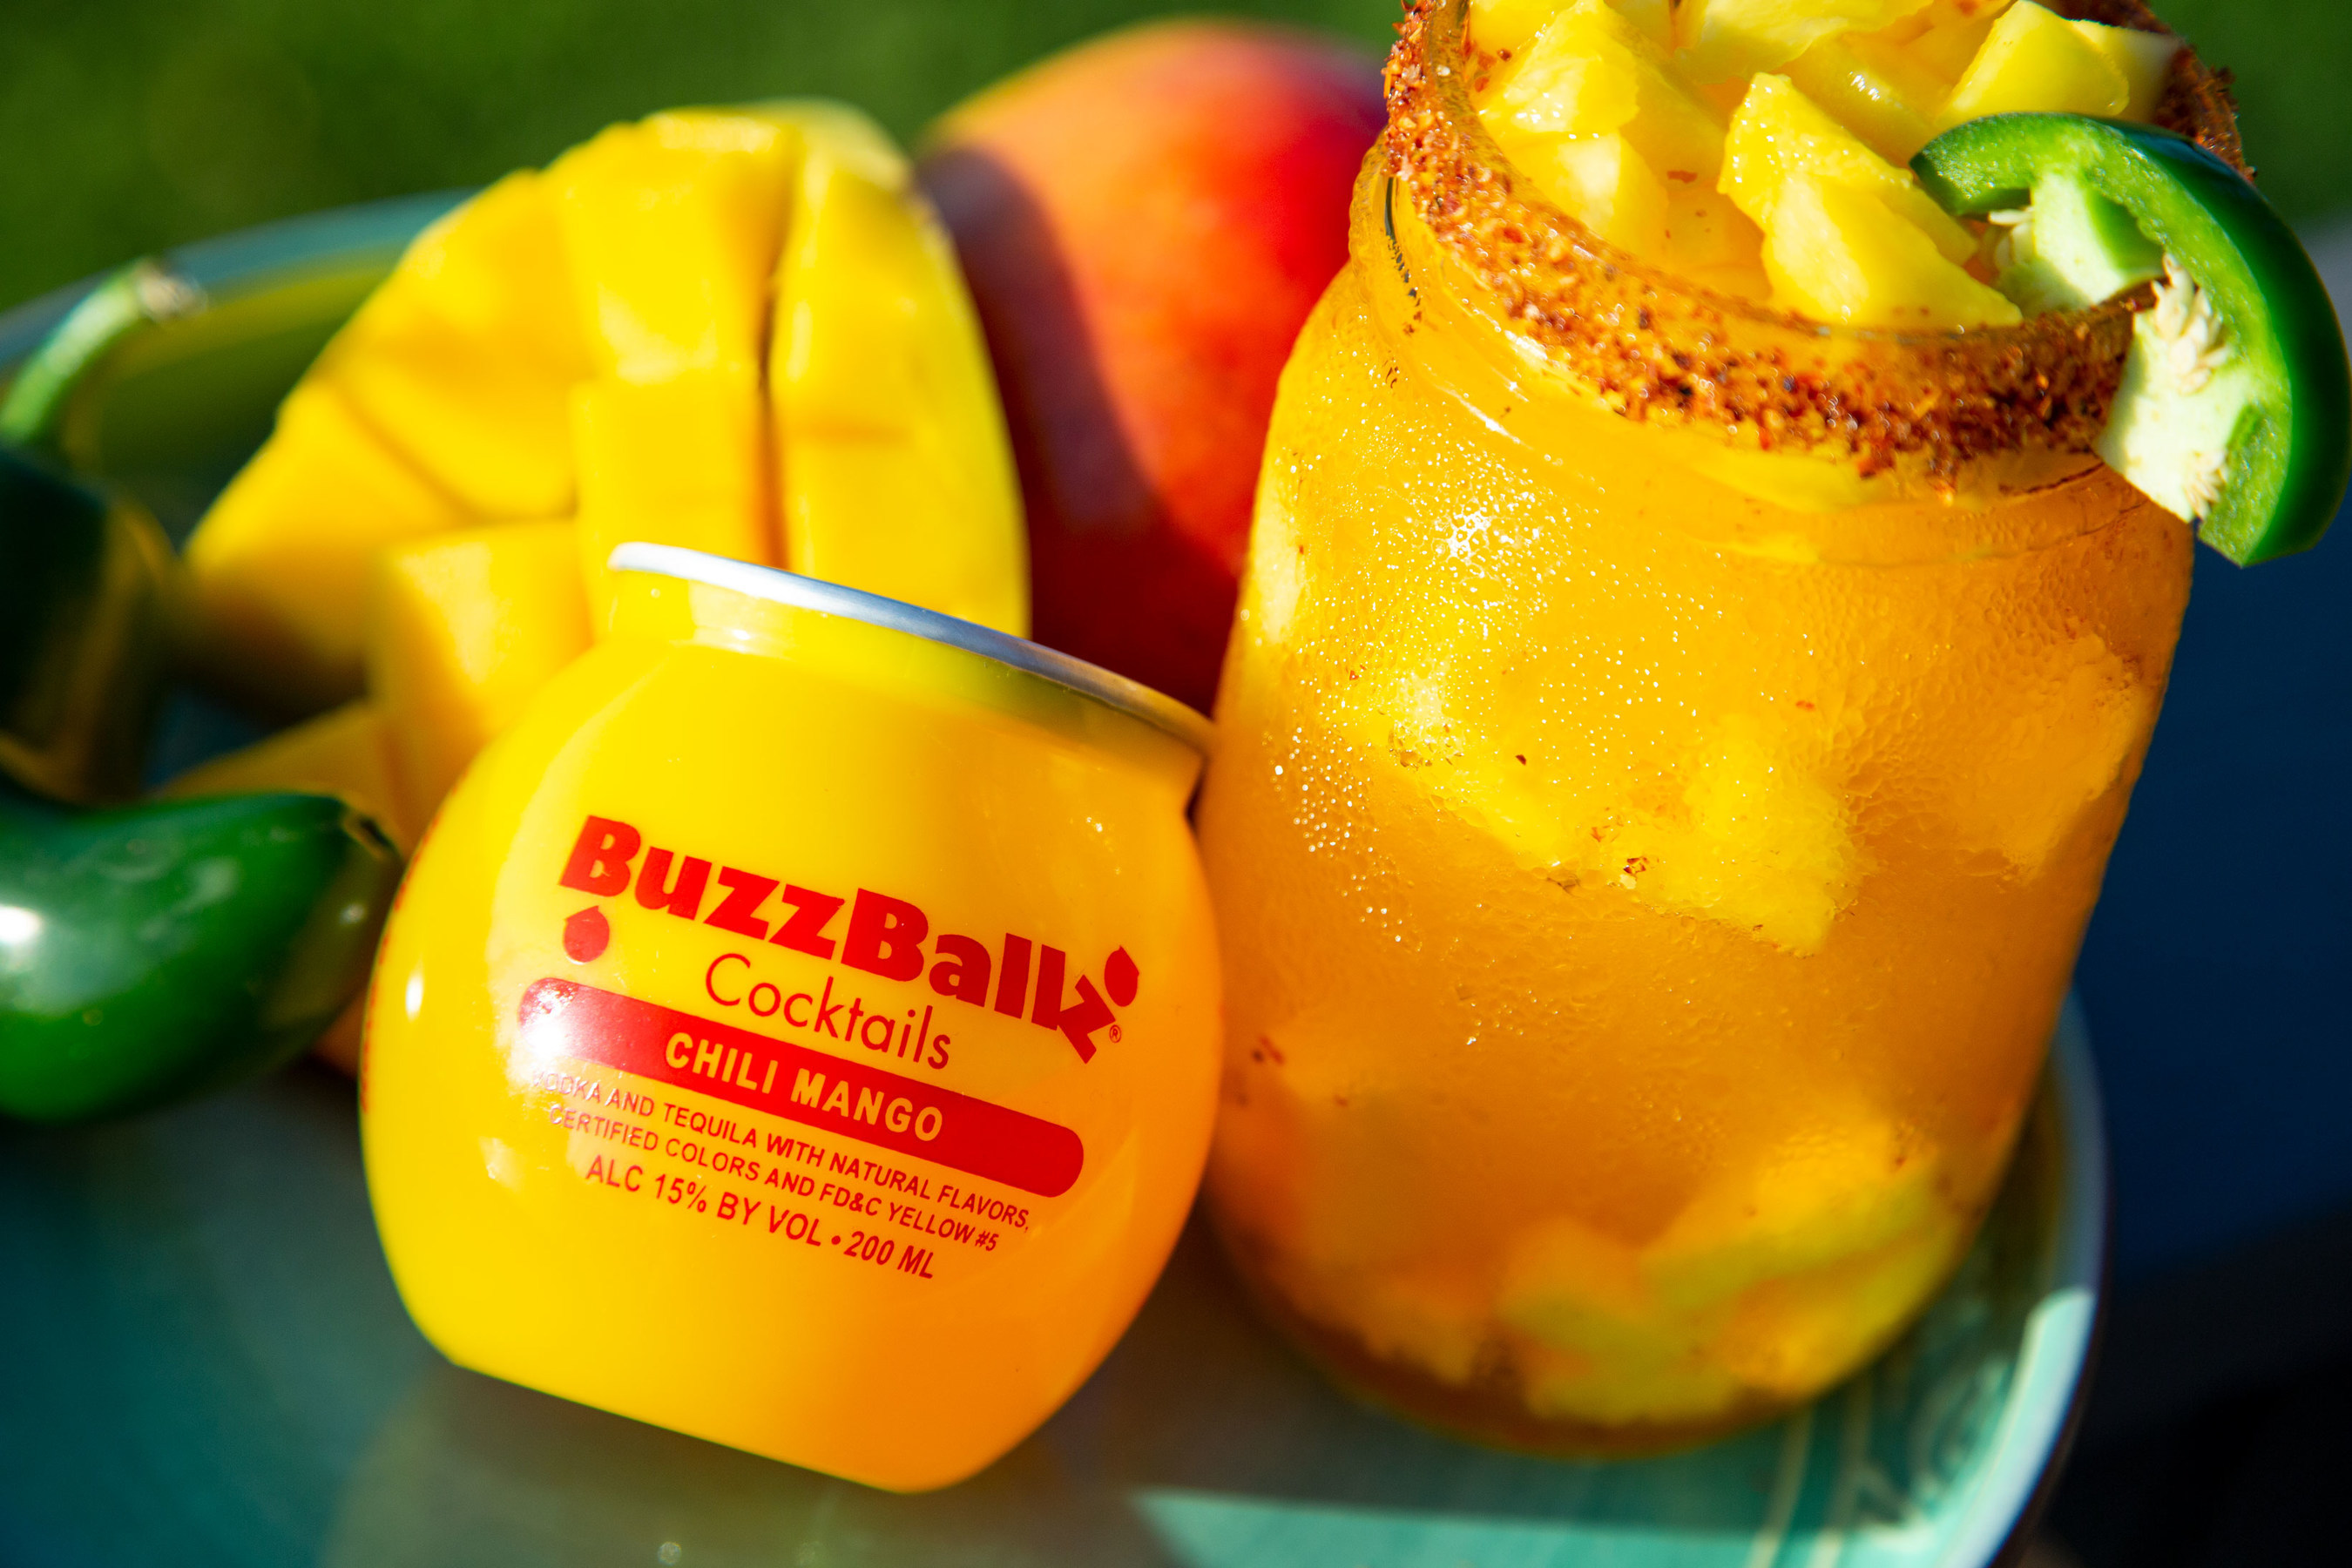 BuzzBallz Chili Mango is here, and the name says it all